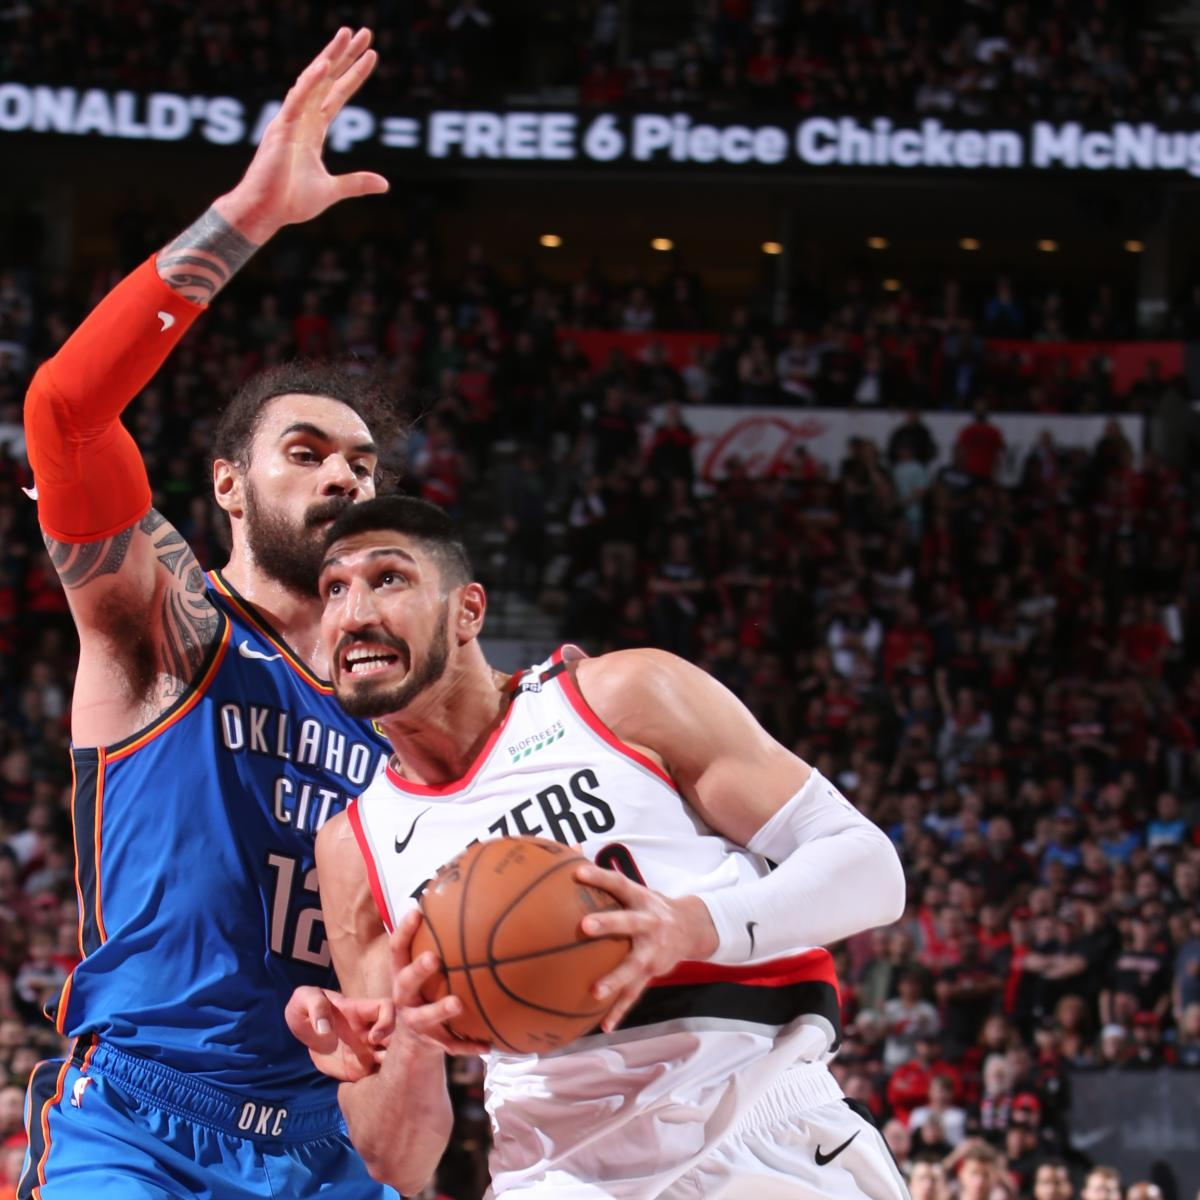 Blazers Kanter: After Blazers' Win, Enes Kanter Says Knicks Thought He Was